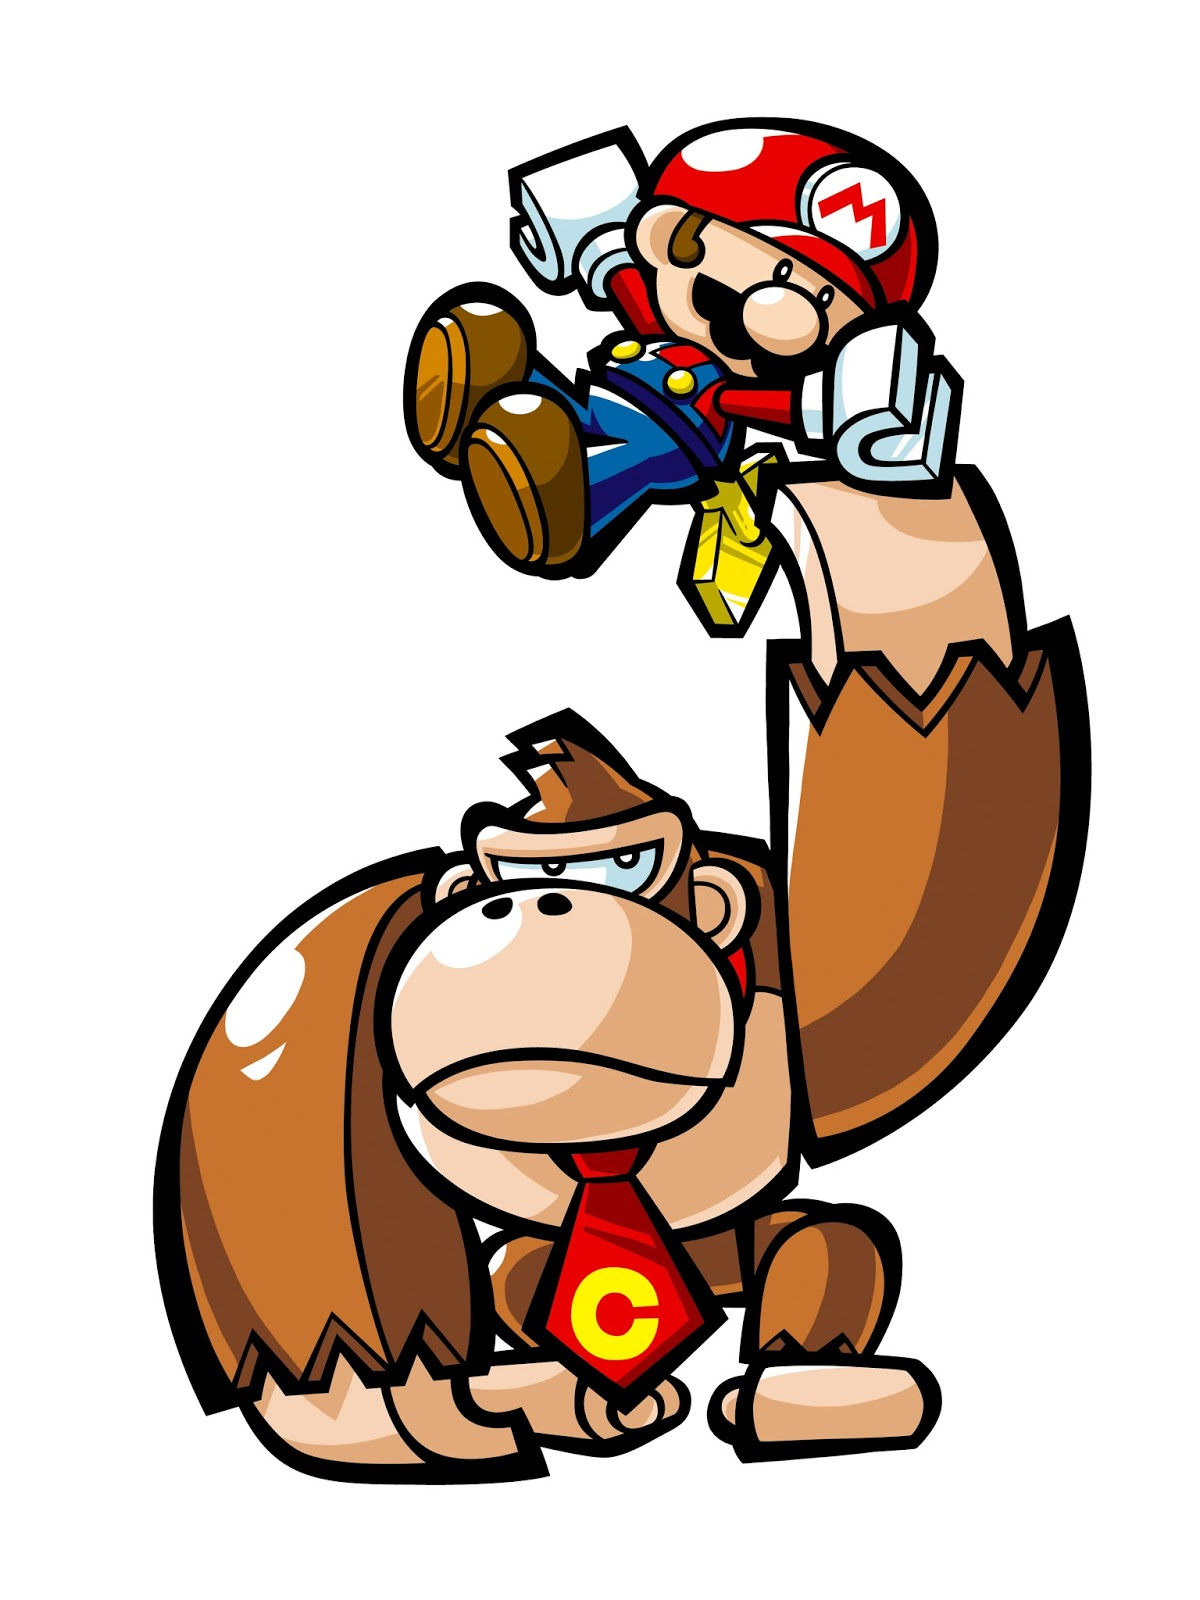 In Donkey Kong Junior The Carpenter Was Renamed Mario However His Next Appearance A Video Game